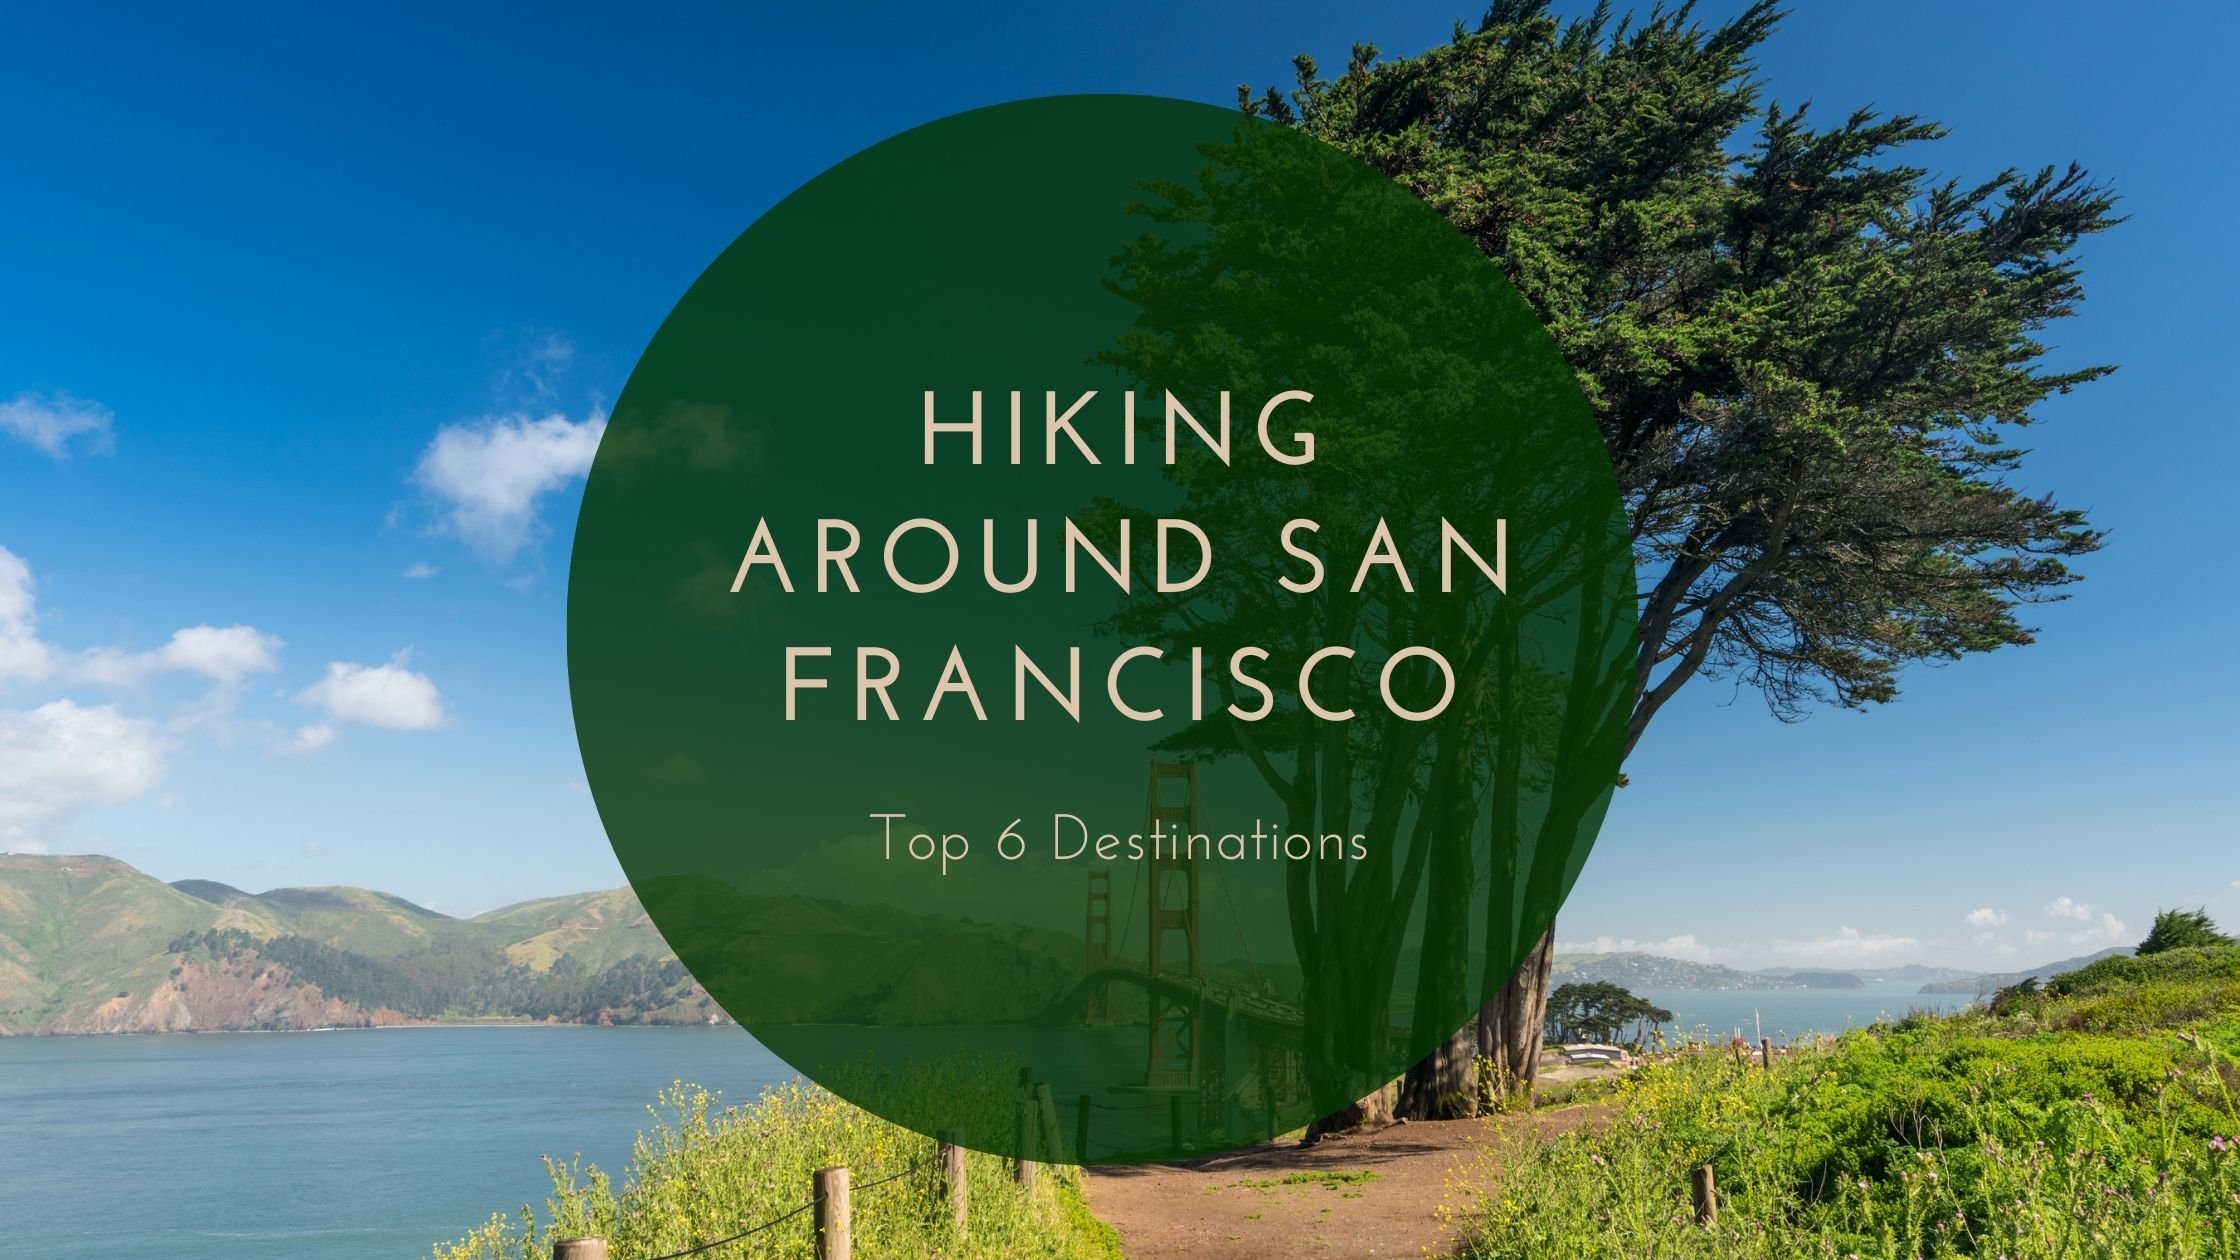 Top 6 Hiking Destinations around San Francisco